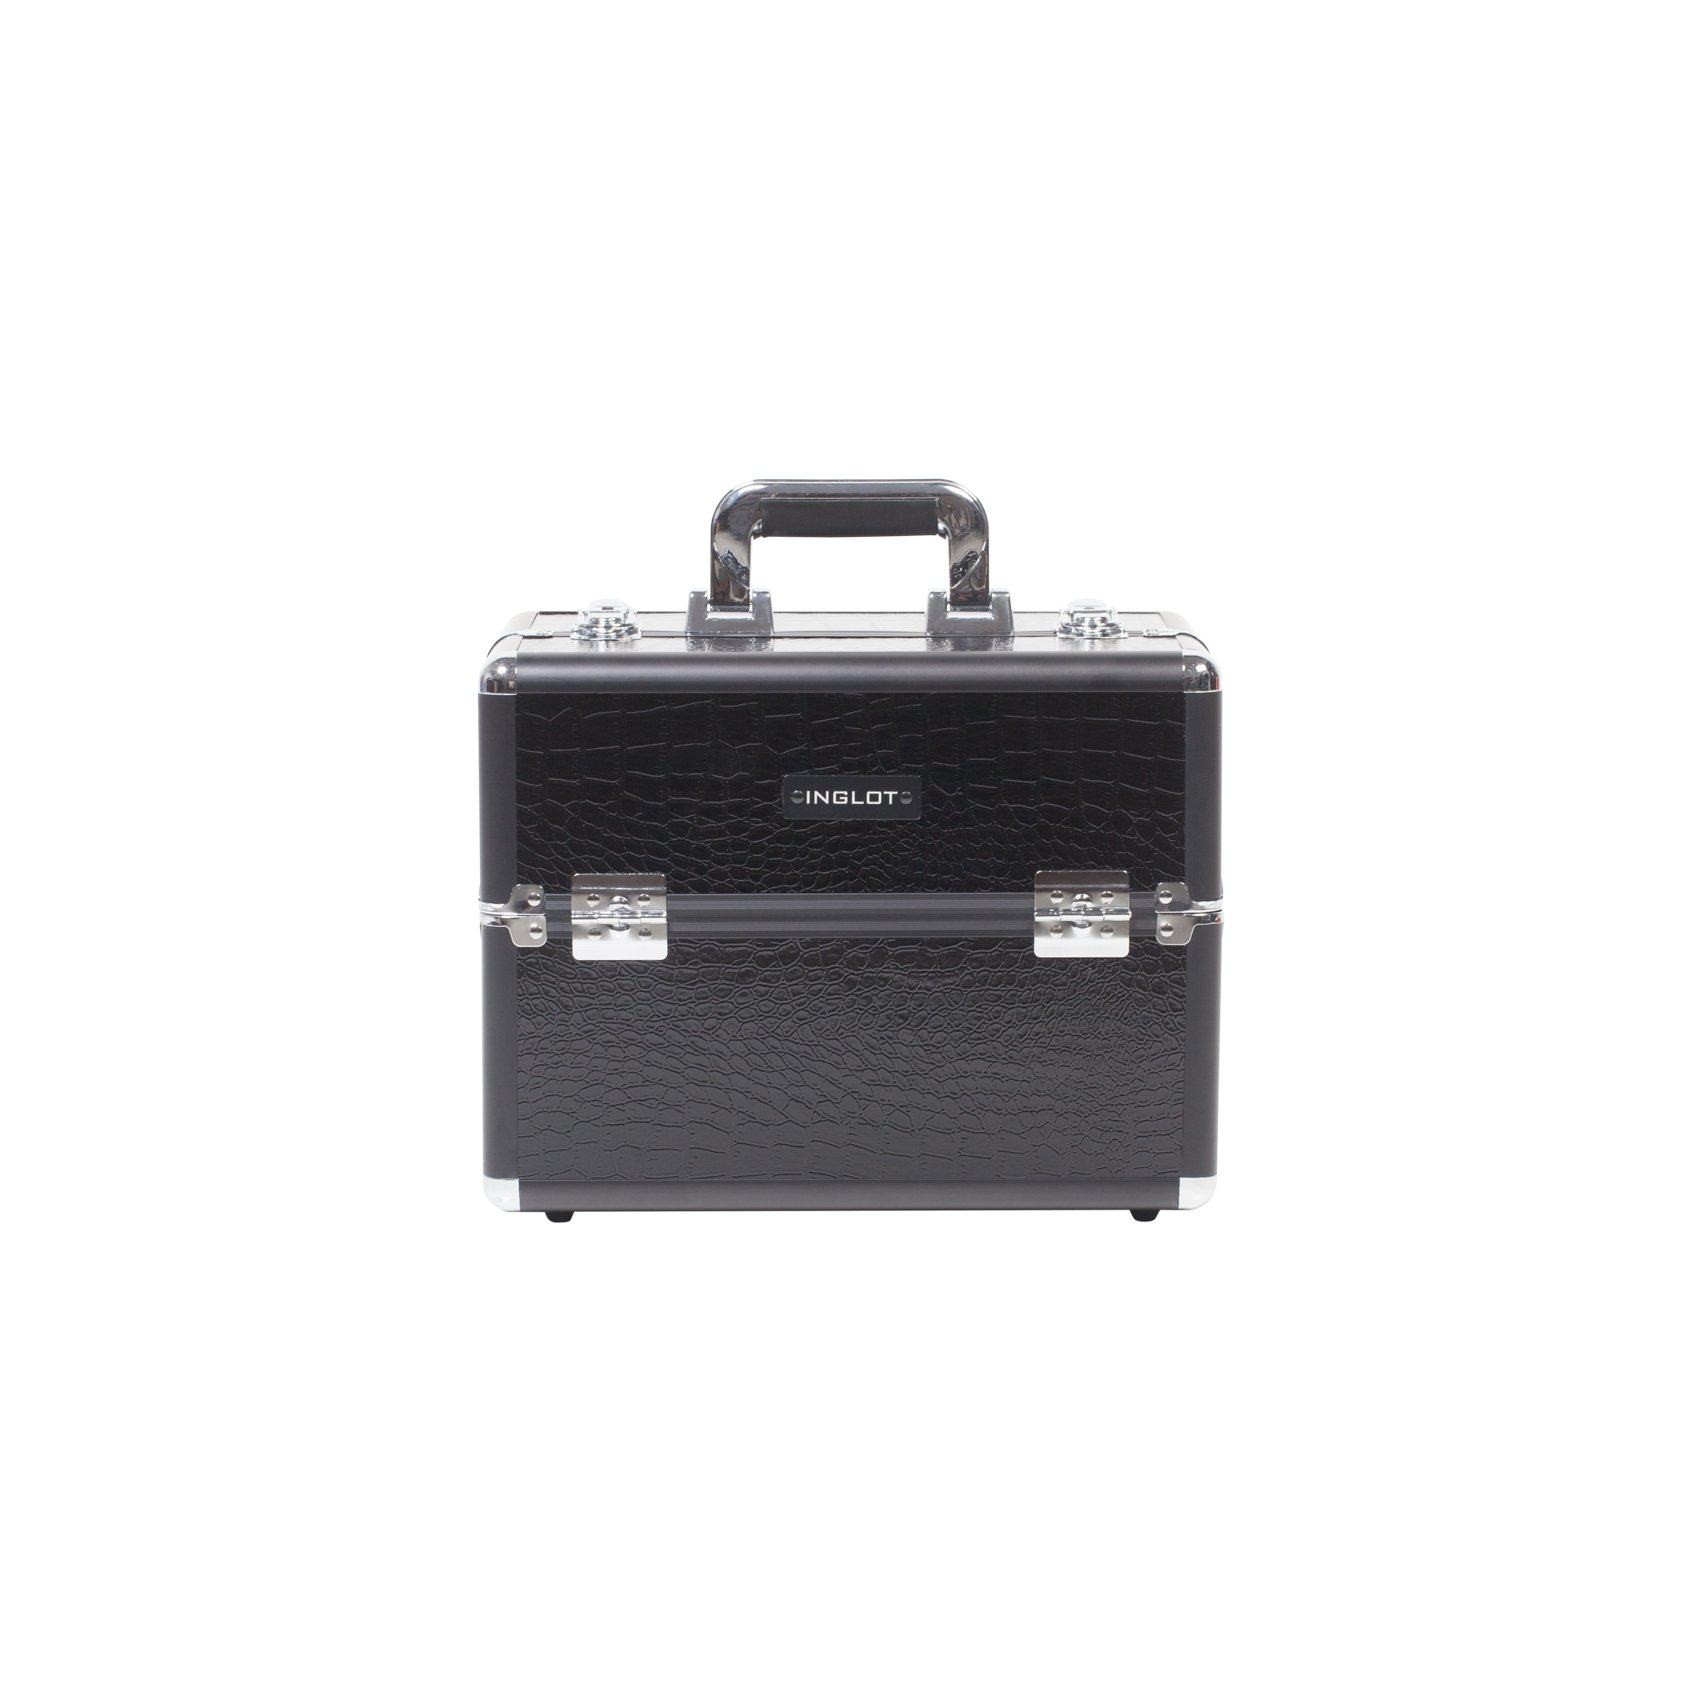 Inglot Makeup Case Kc-156-Cr by Inglot